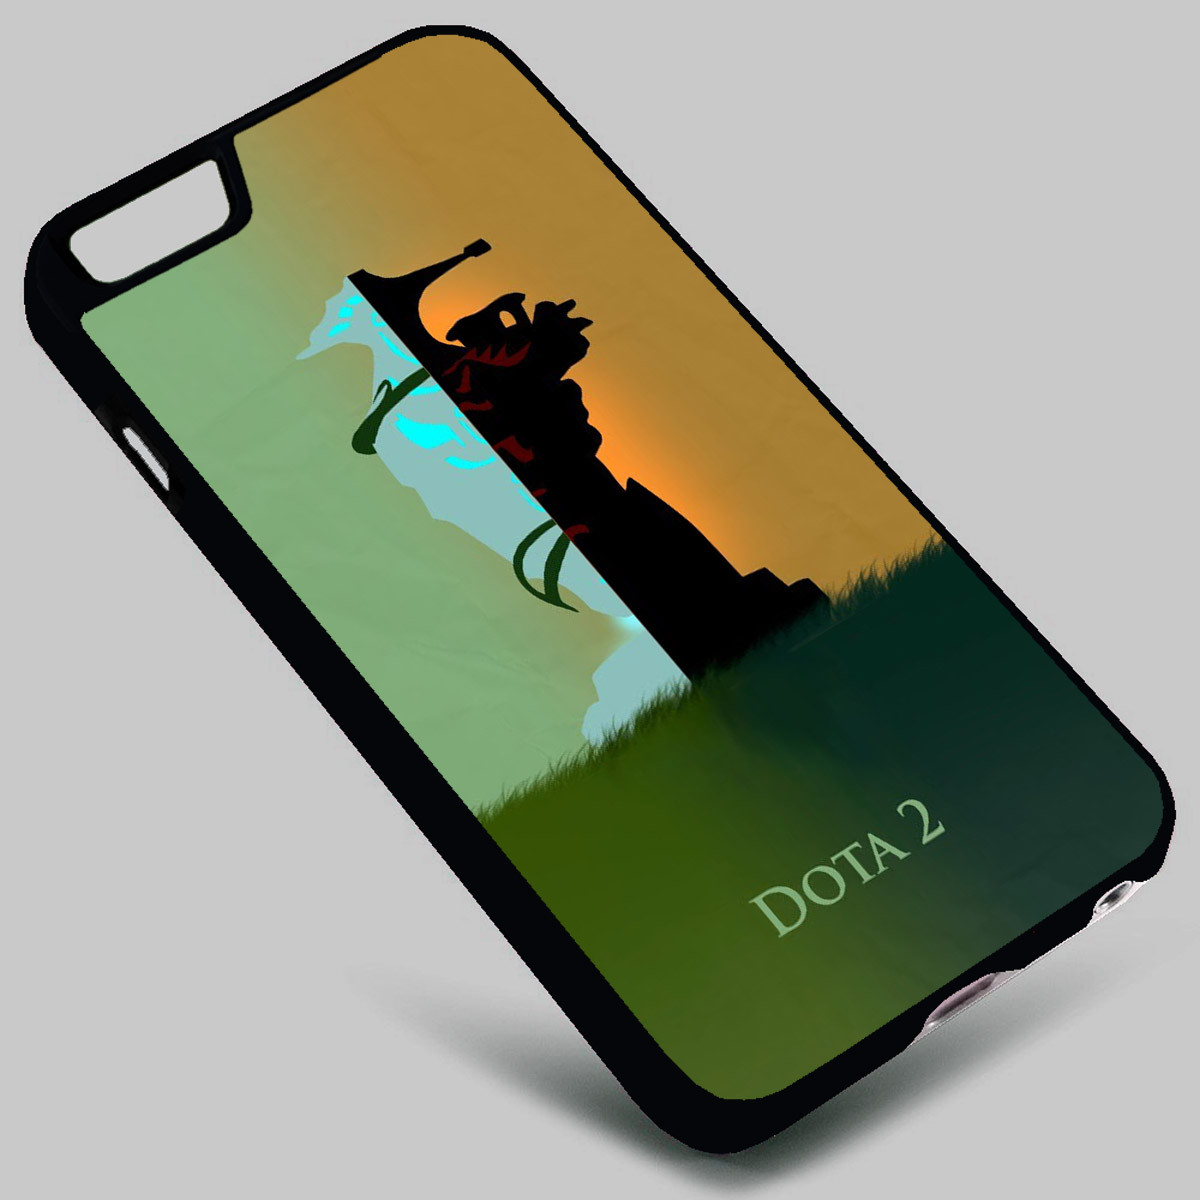 Dota 2 Games (1) on your case iphone 4 4s 5 5s 5c 6 6plus 7 Samsung Galaxy  s3 s4 s5 s6 s7 HTC Case